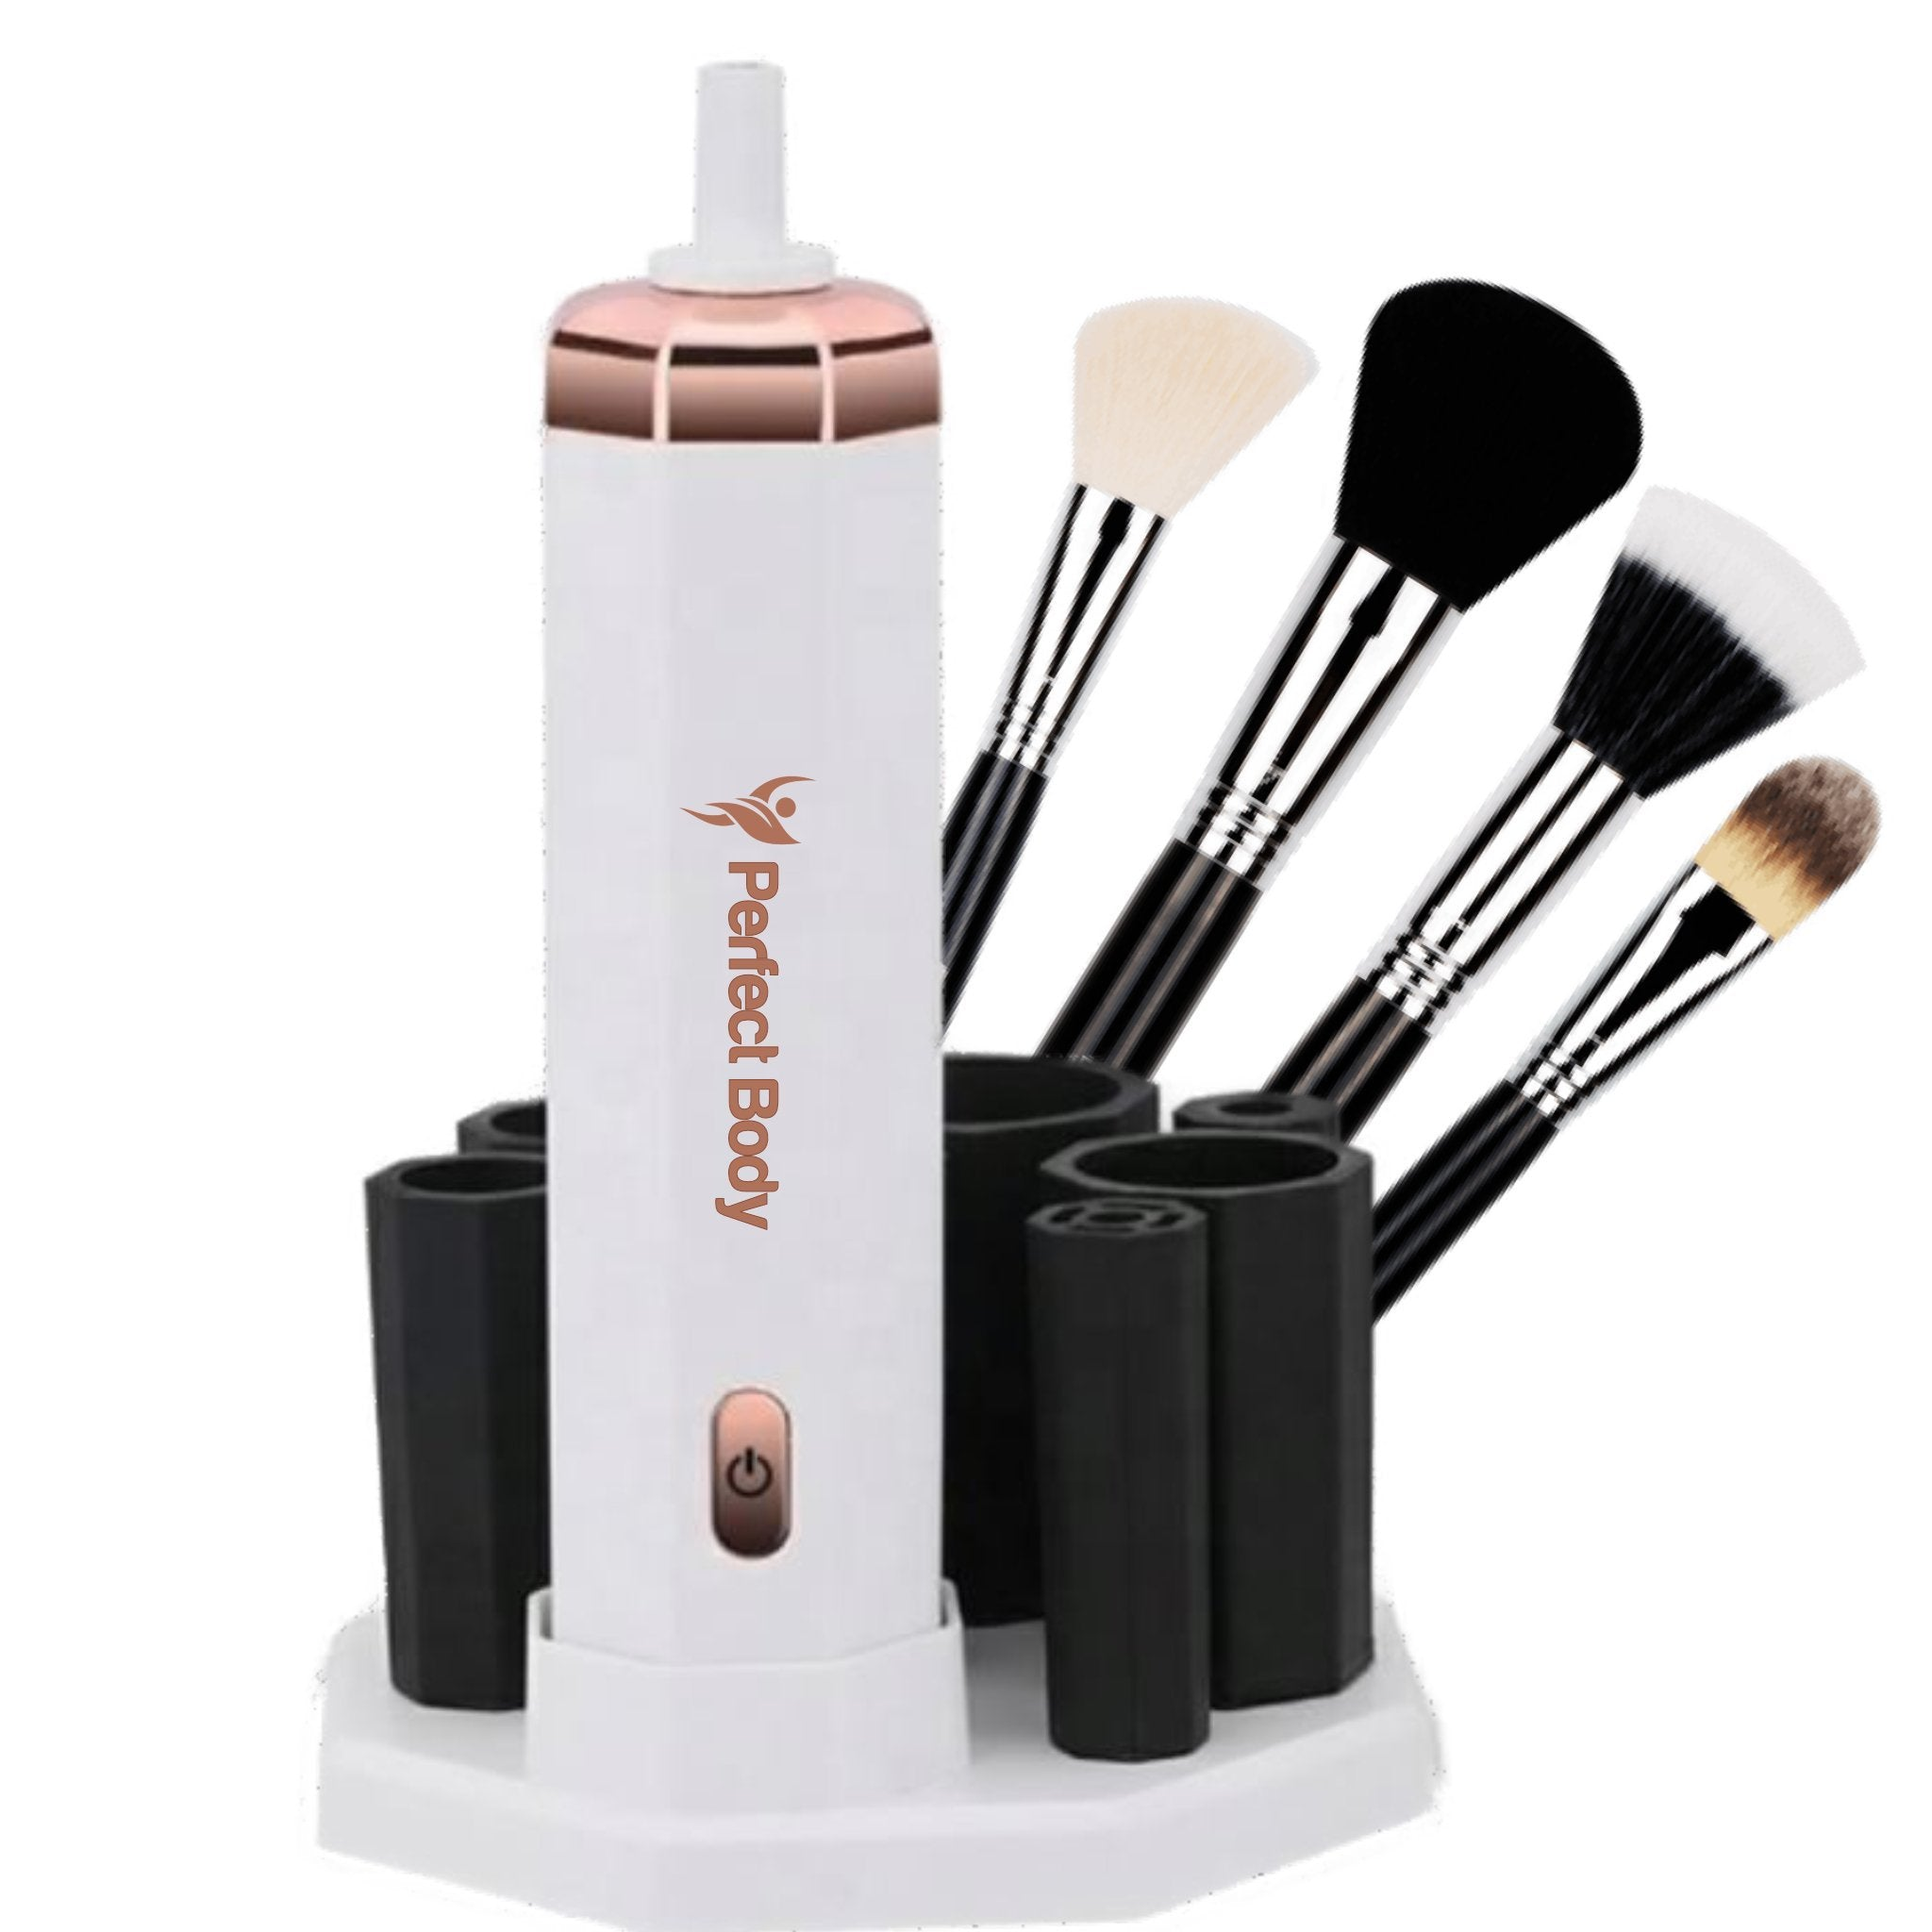 Image of   Elektrisk Makeup Børste Renser - Makeup Brush Cleaner